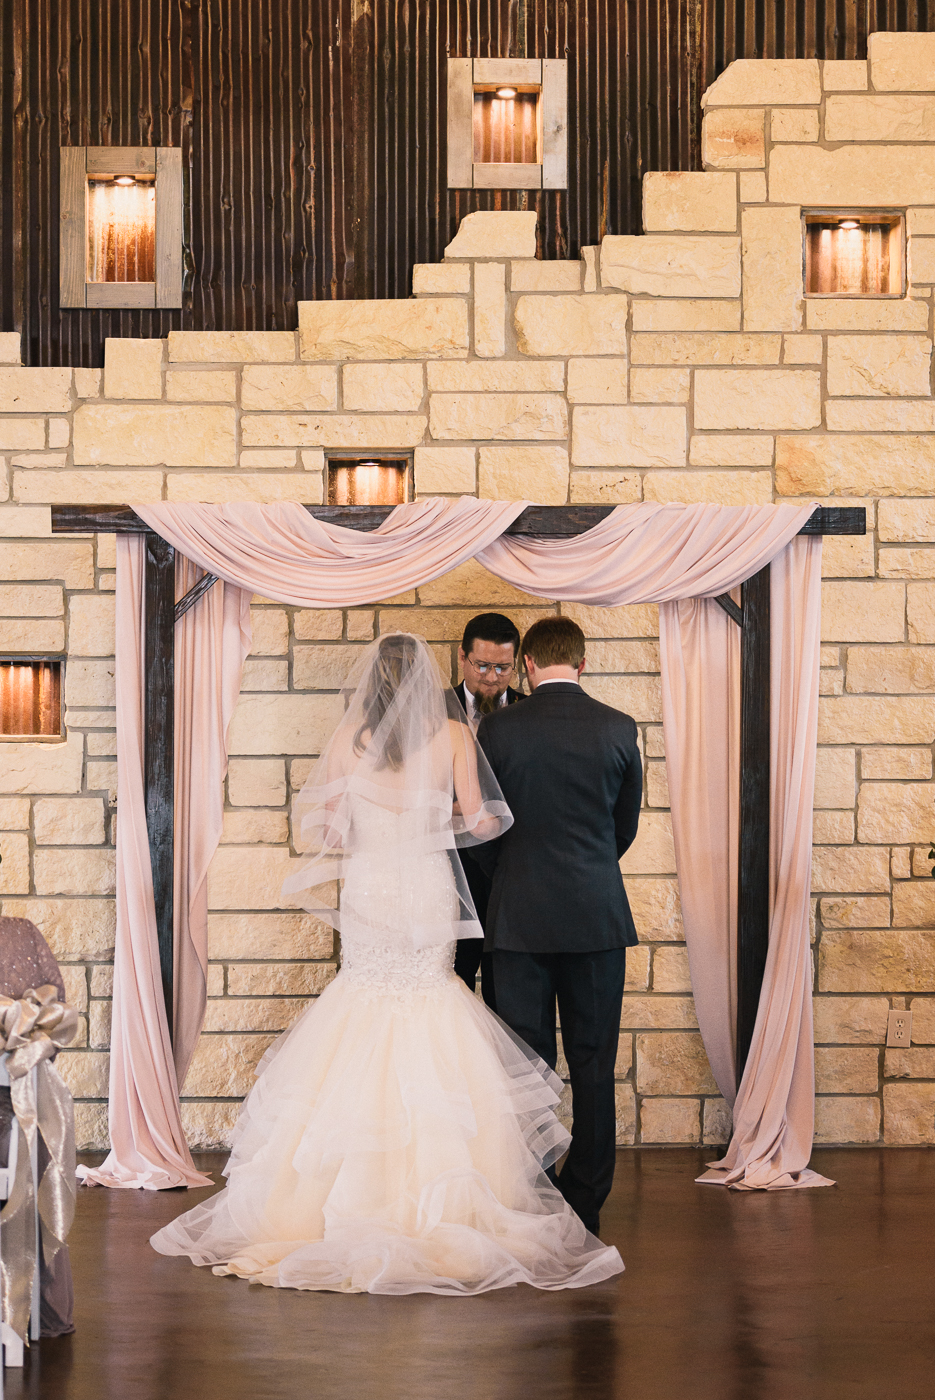 Bride and Groom wedding ceremony altar officiant pink mermaid gown